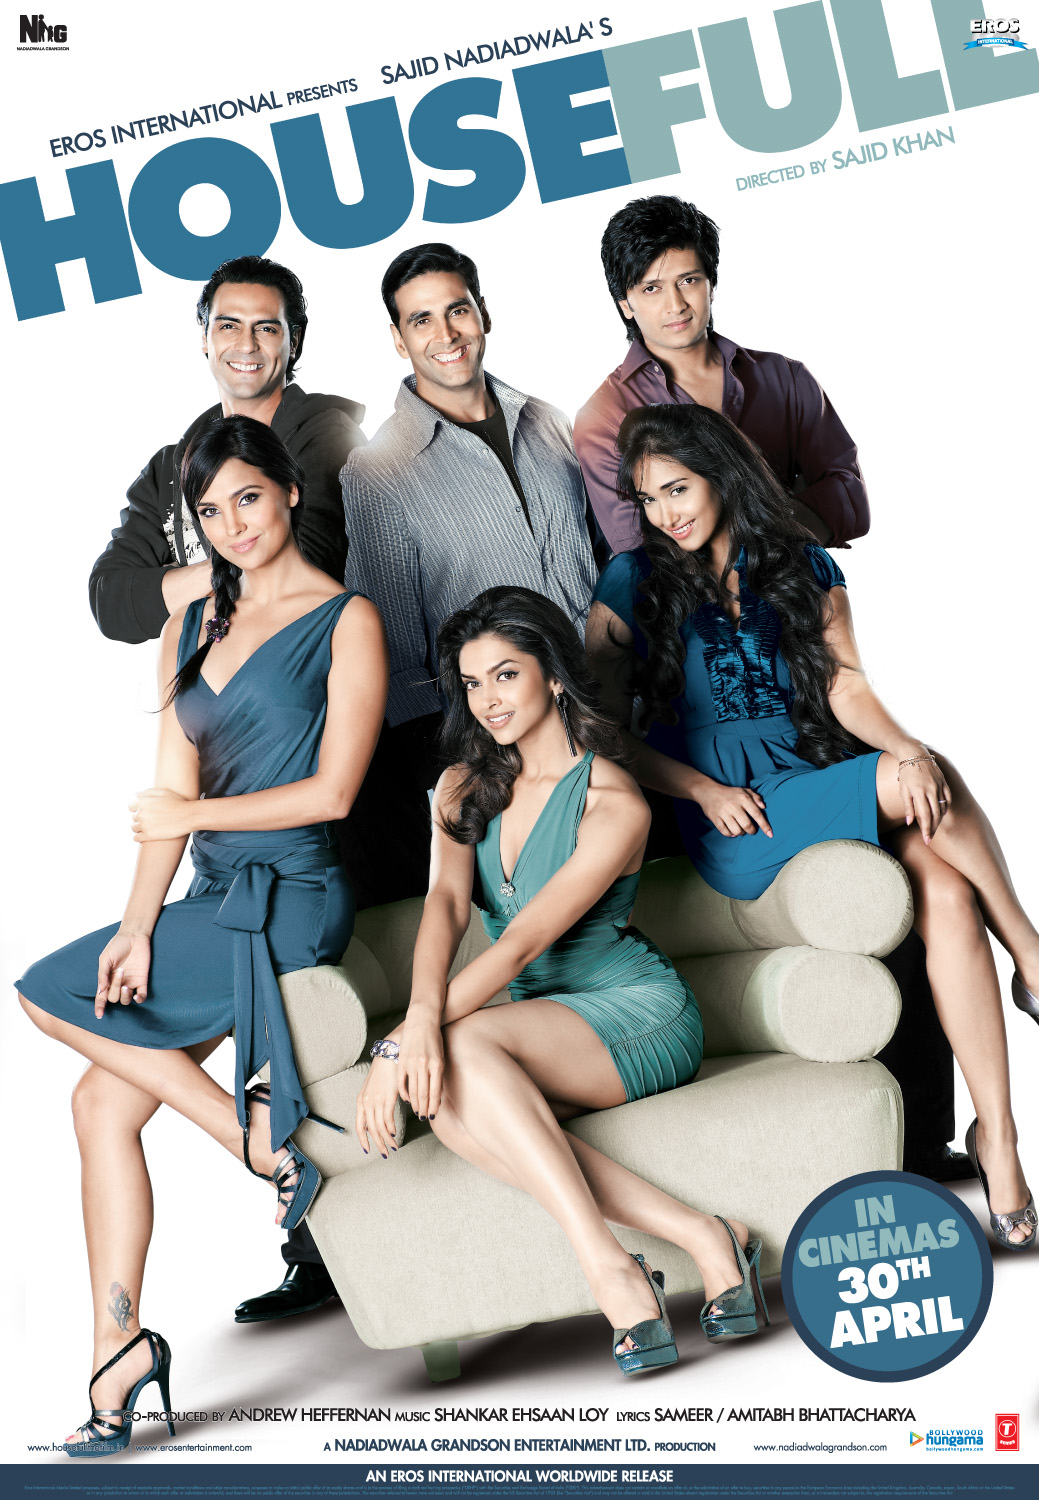 free movie poster download hindi movie picture film